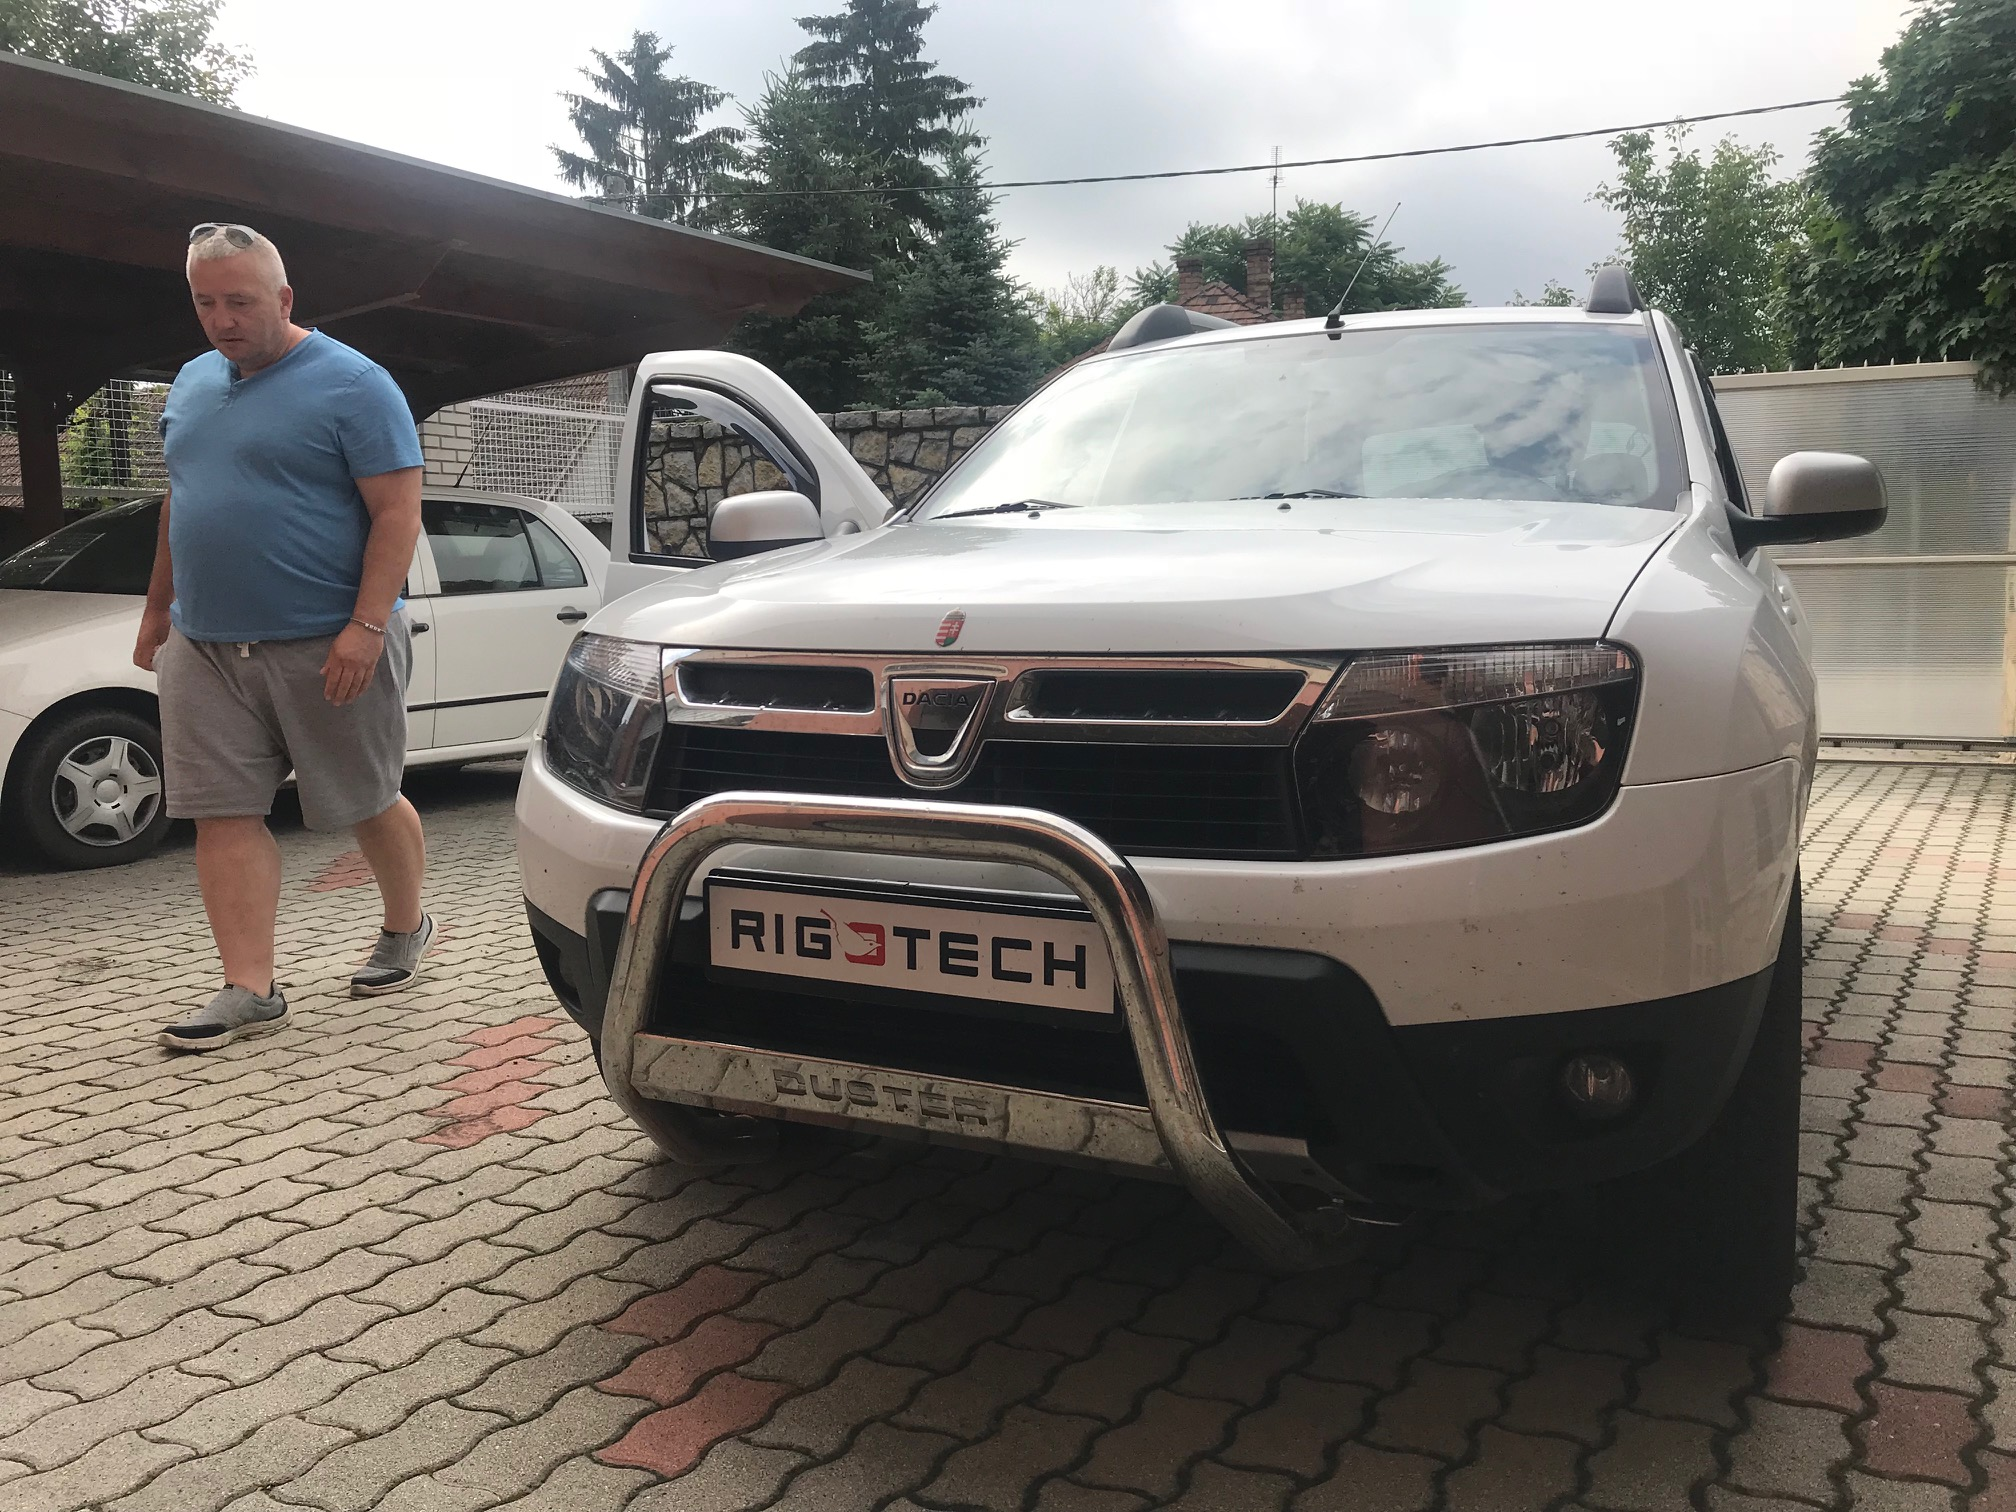 Dacia-Duster-15dci-110Le-Chiptuning